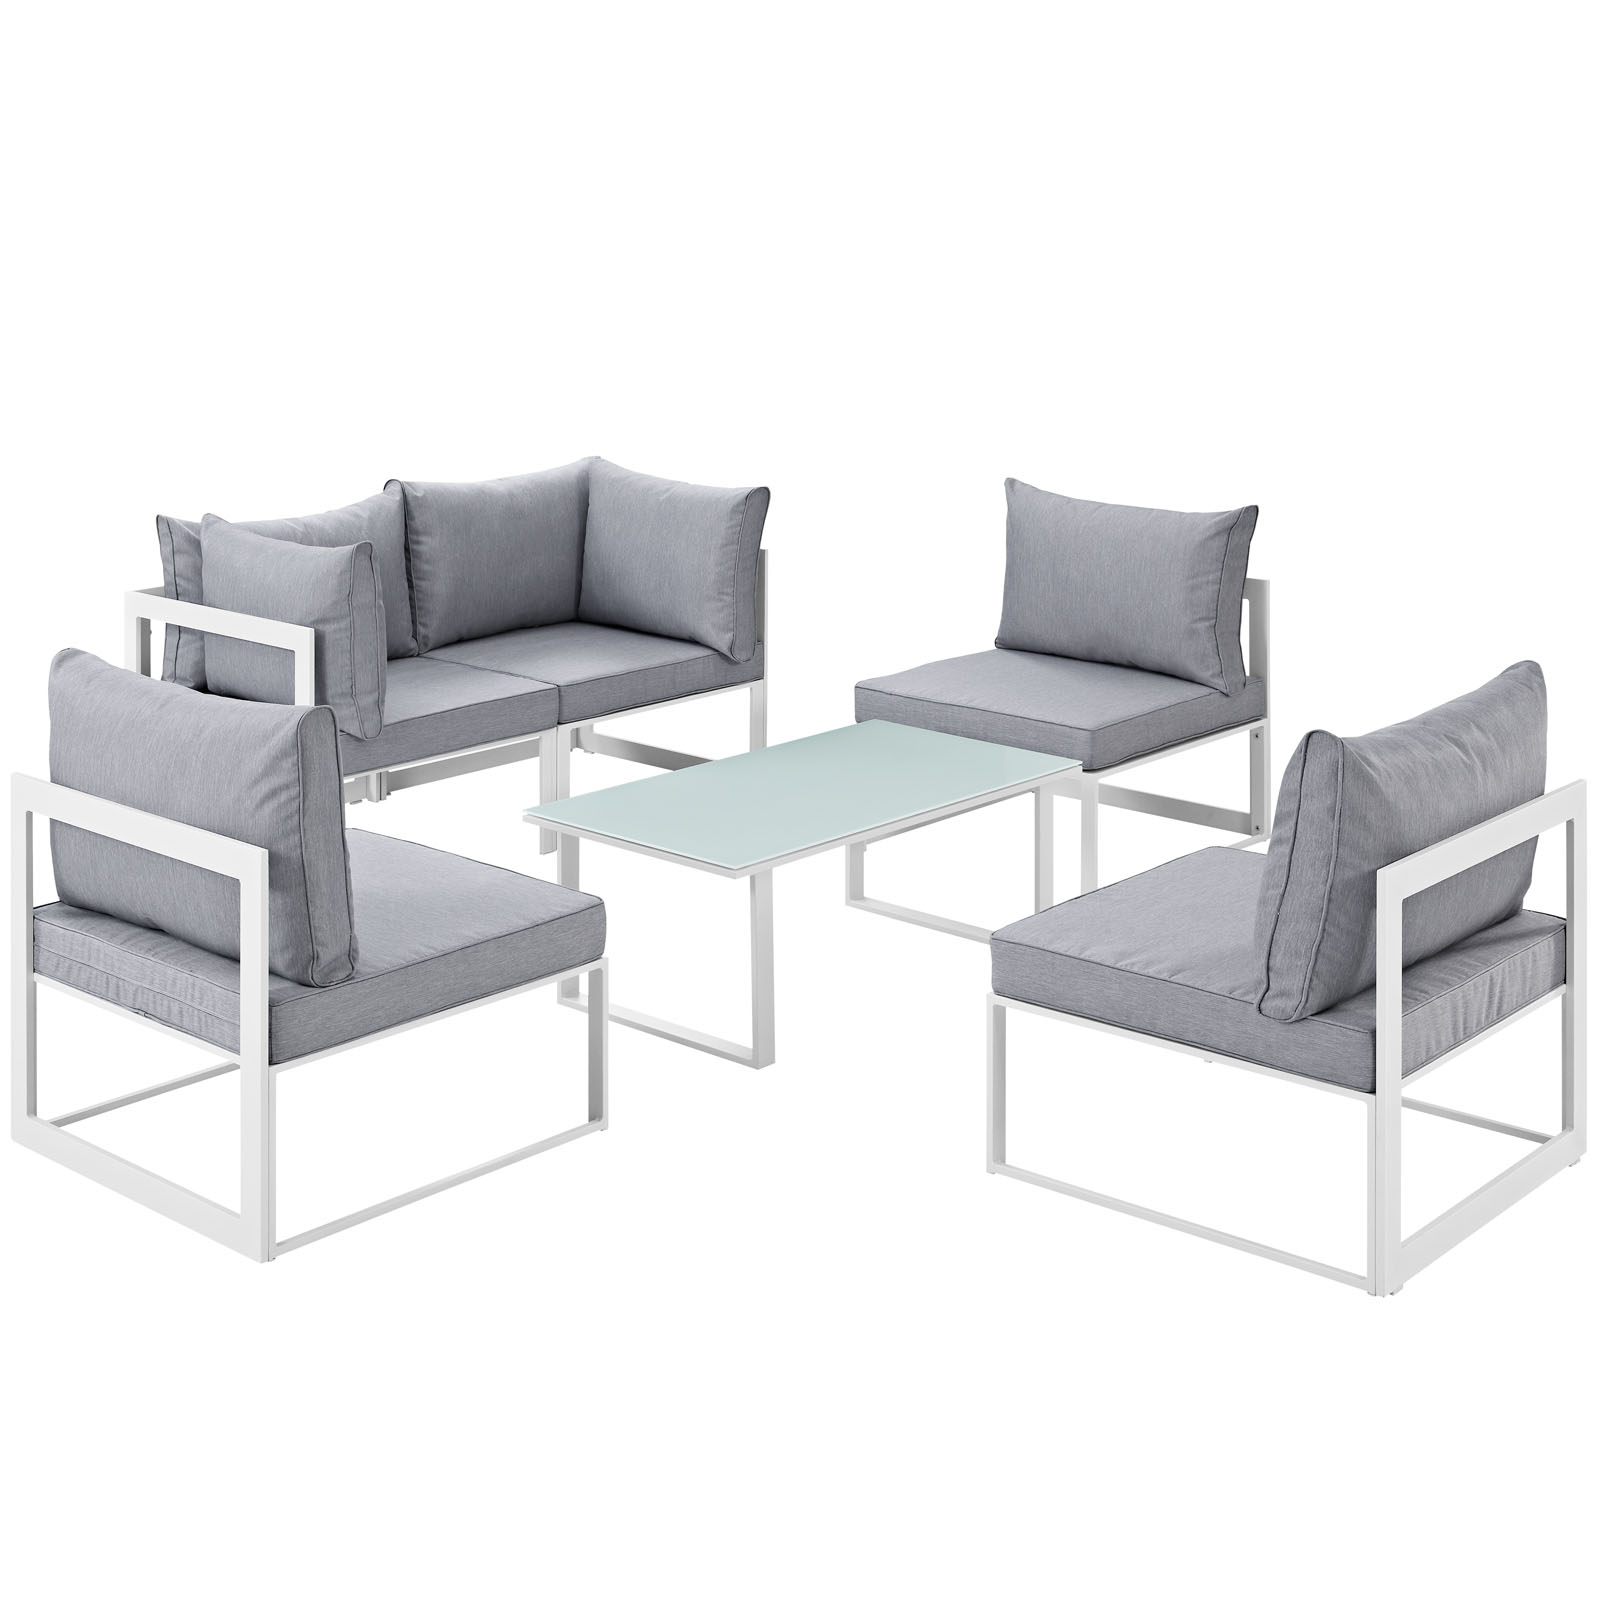 Modern Urban Contemporary 6 pcs Outdoor Patio Sectional Sofa Set, White Grey Fabric Steel